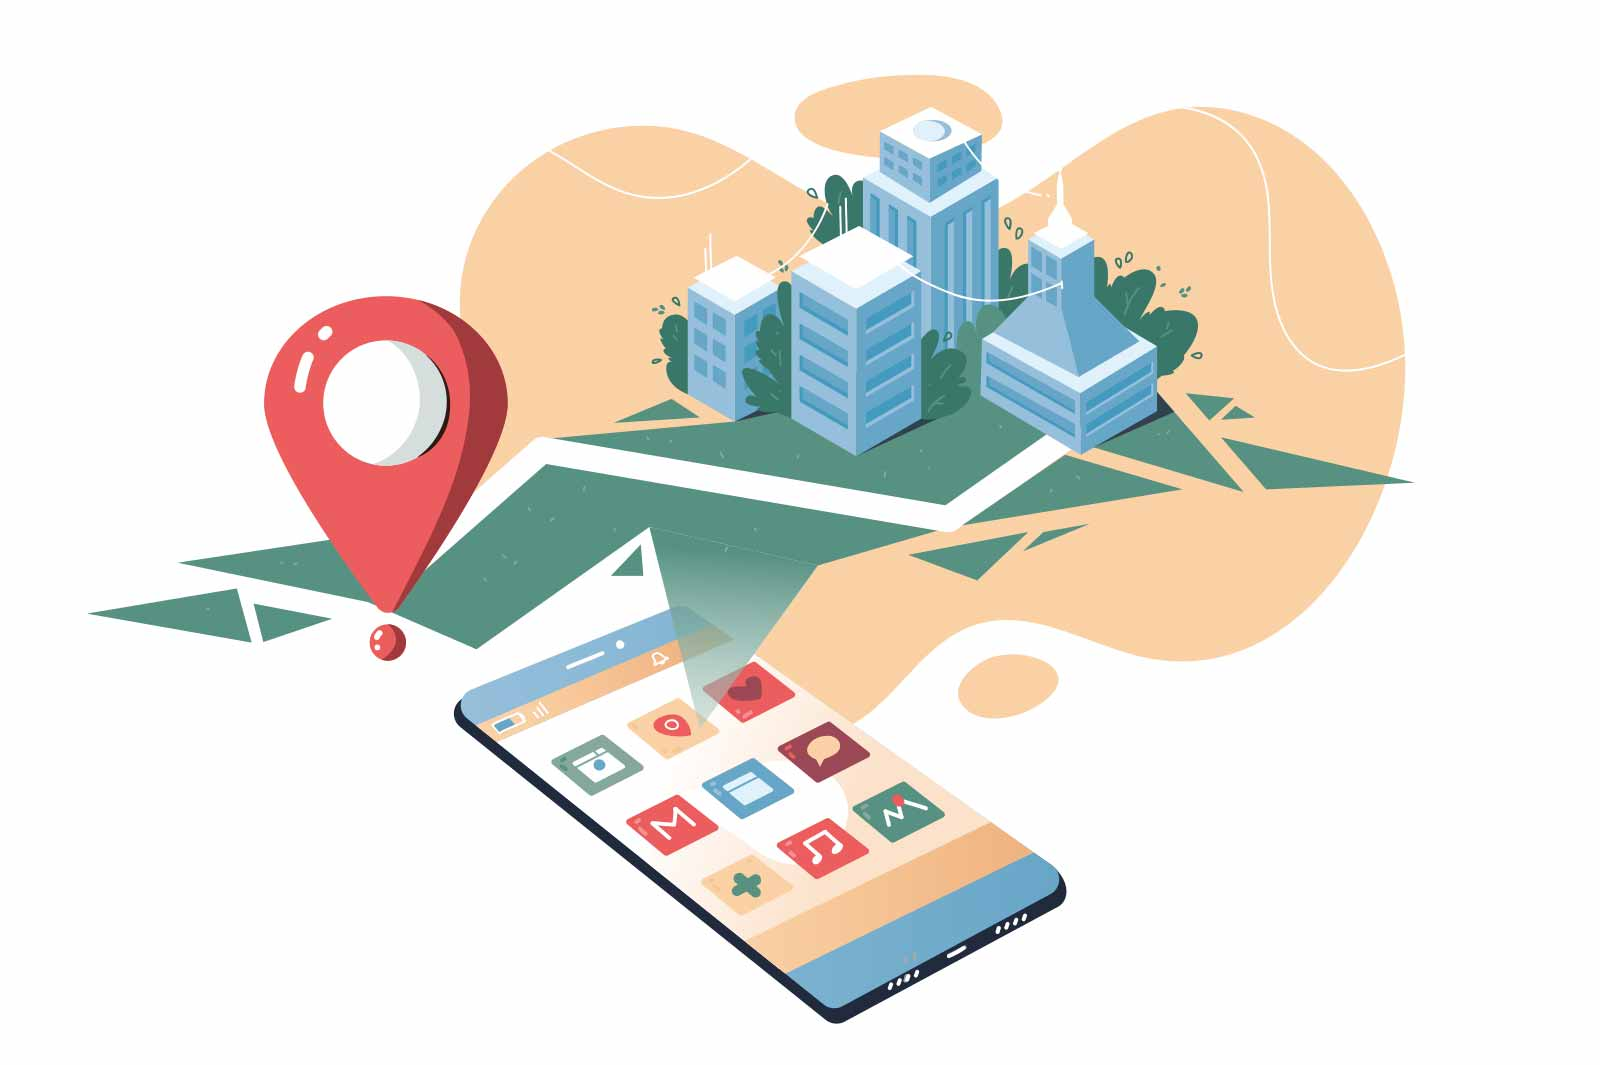 Smartphone application with city map vector illustration. Route plan with red pin flat style. Online GPS app, web navigation service concept